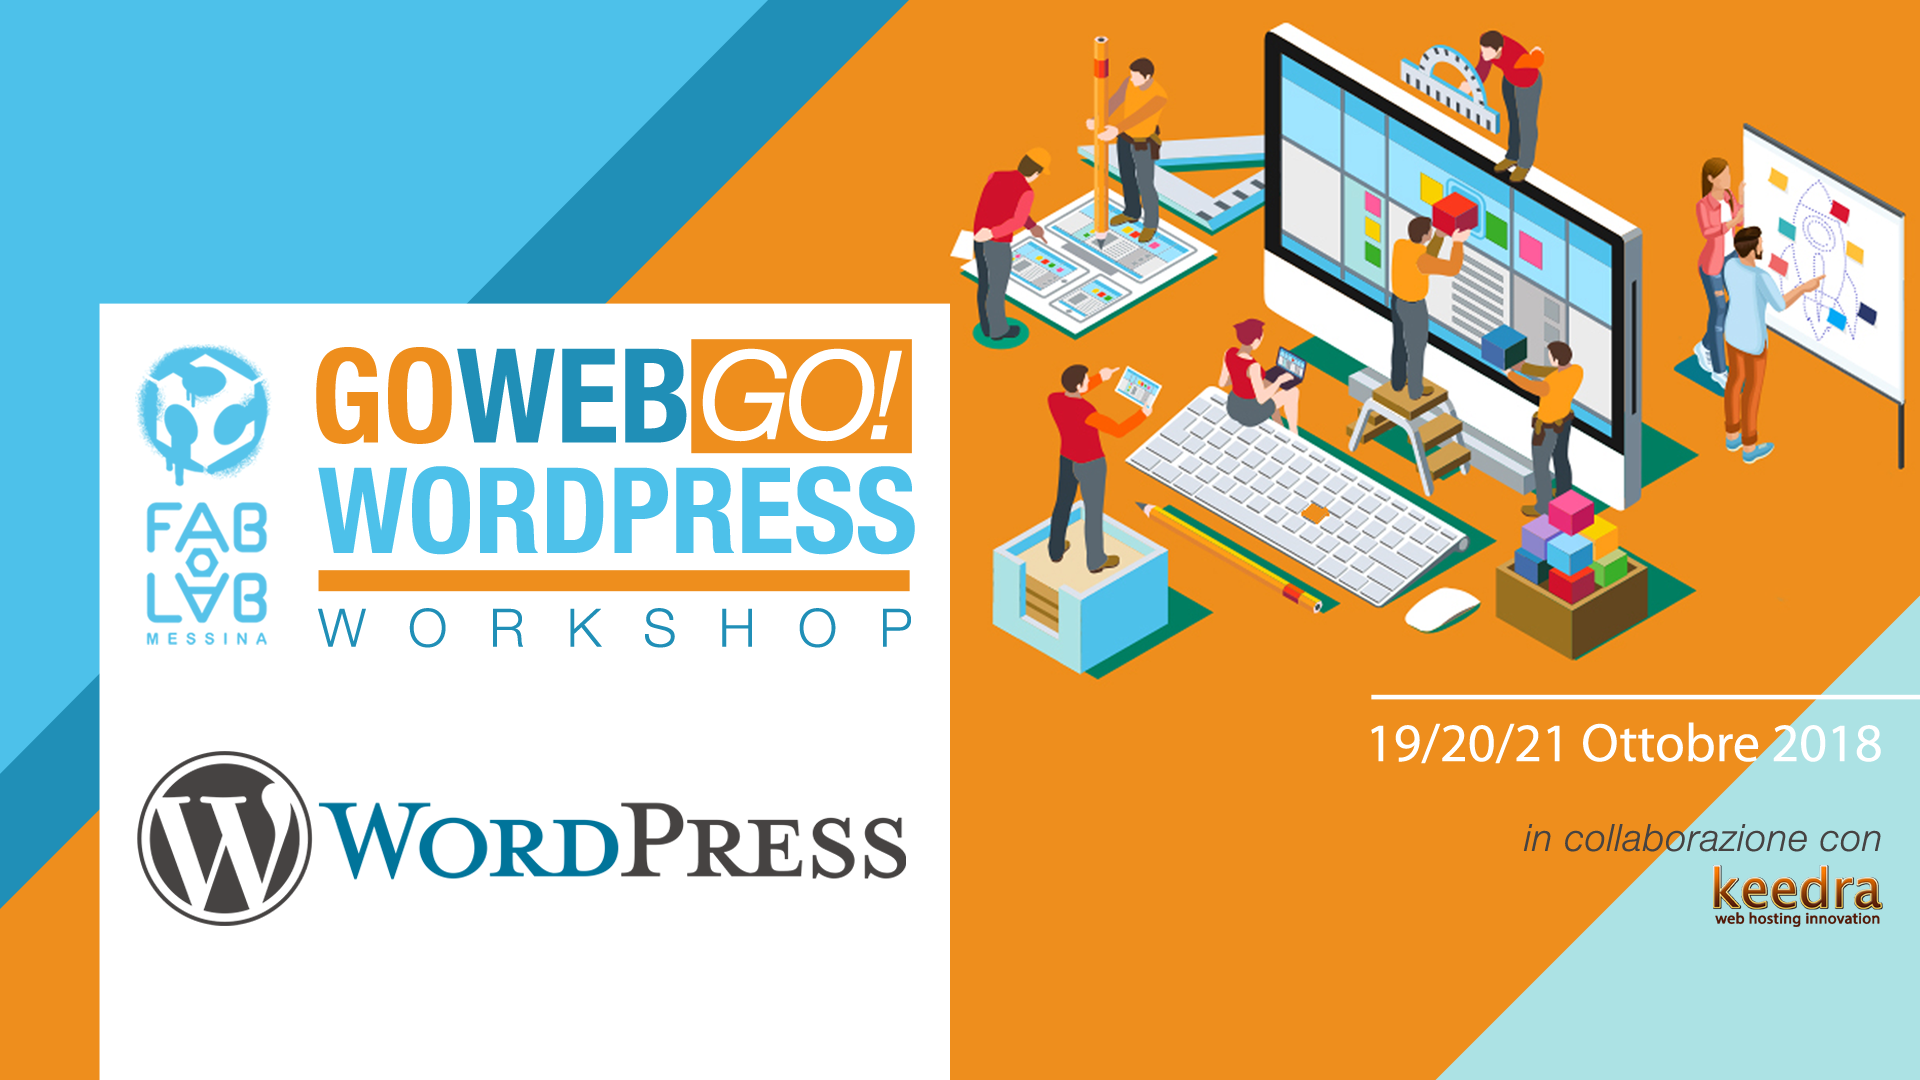 GoWebGo! – WordPress Workshop